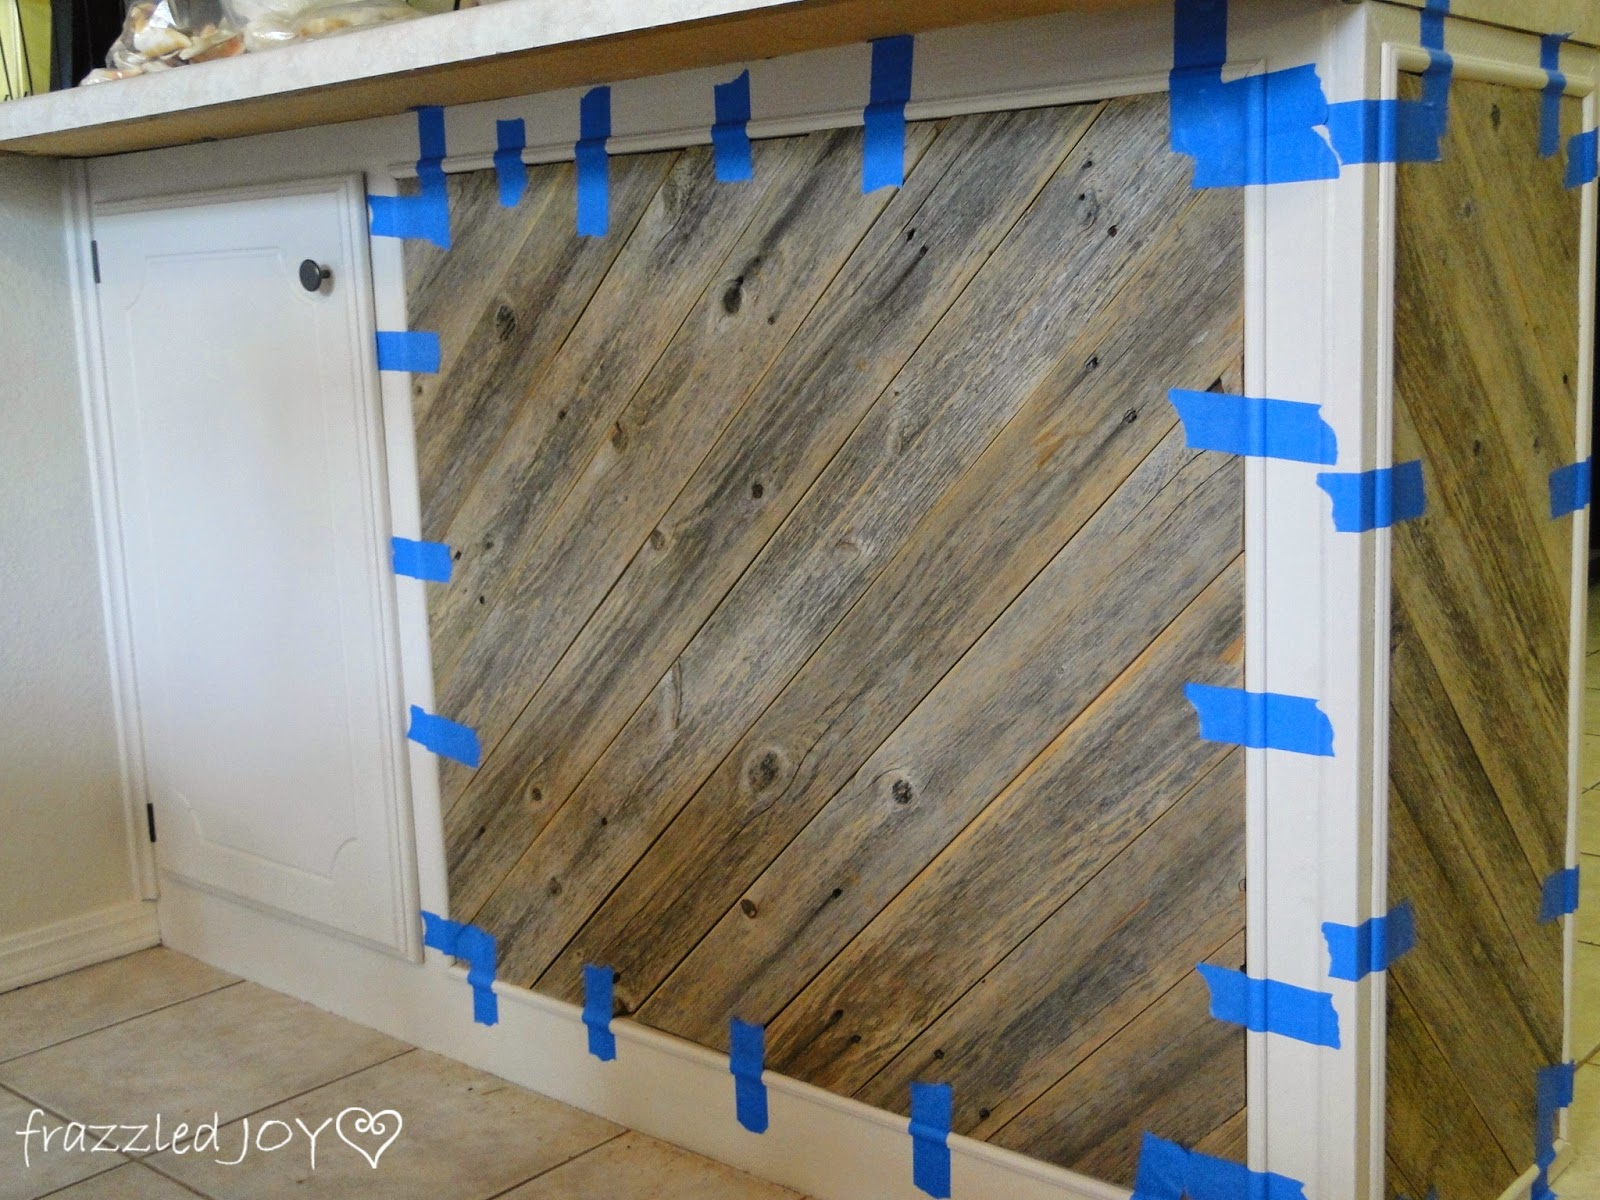 Best adding trim to reclaimed wood plank kitchen island Frazzled Joy on Remodelaholic